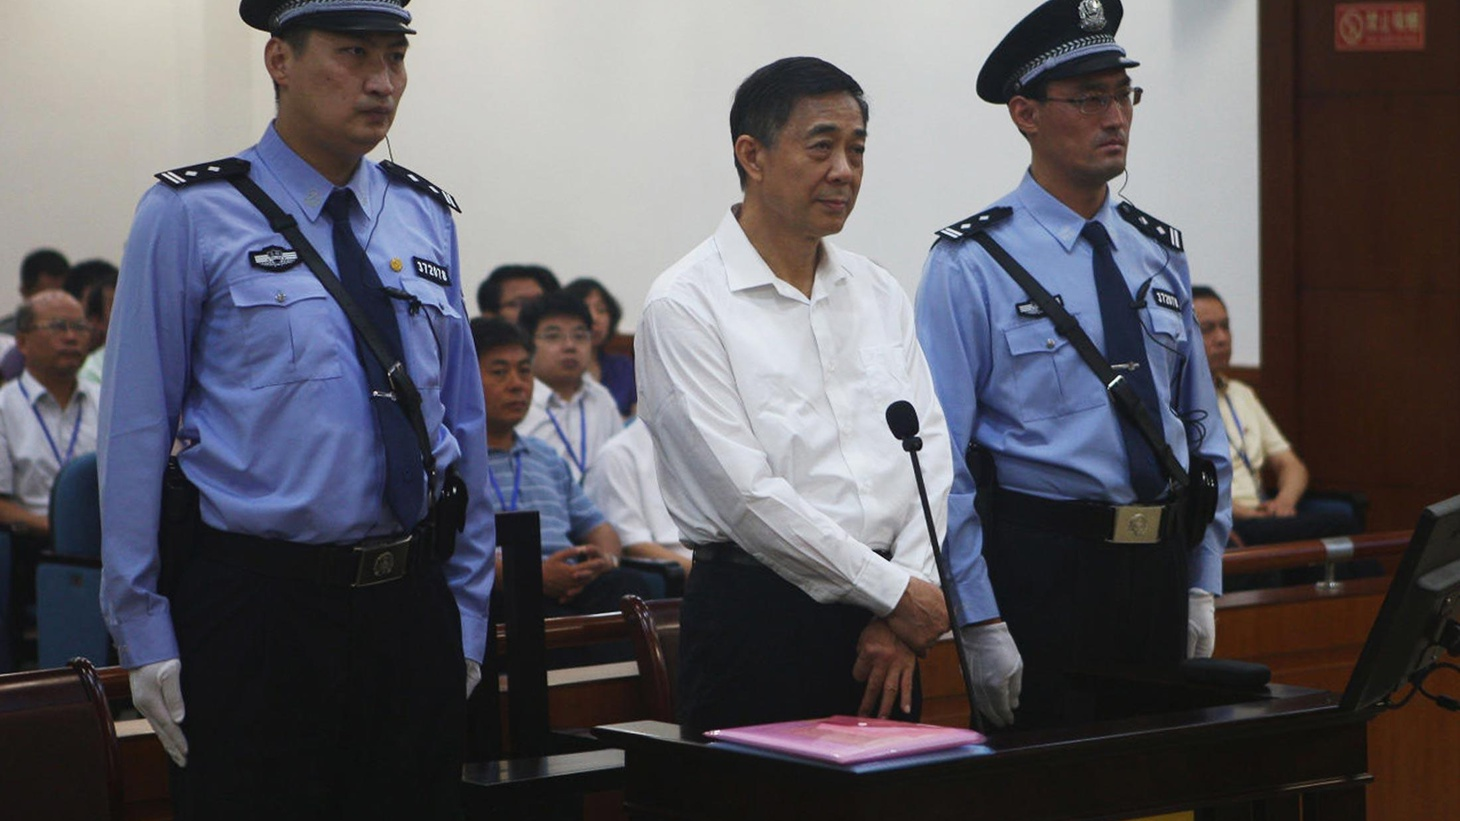 A former candidate to lead China went on trial today on corruption charges. We learn why the trial is a major event for China's new leadership and what consequences are likely.